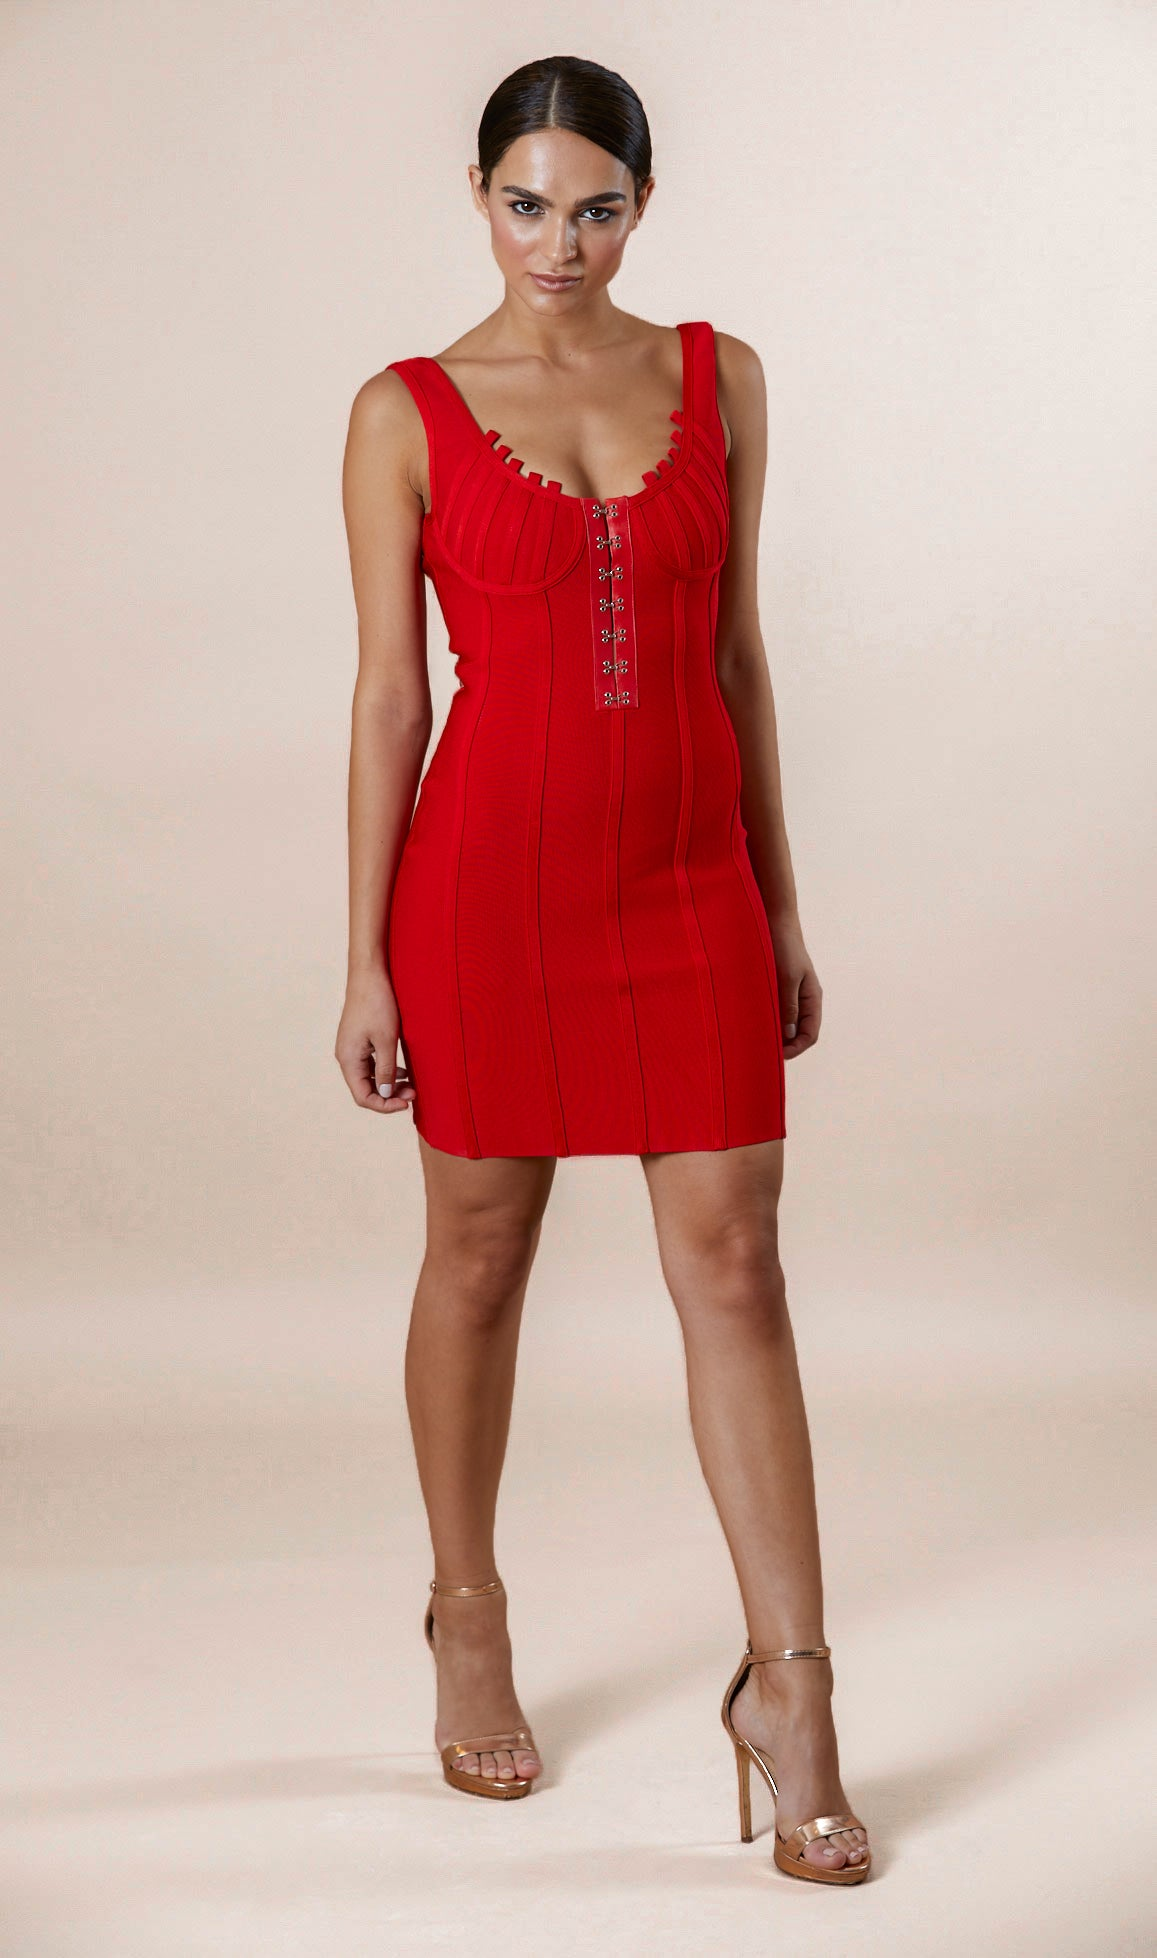 VERONICA Corset Bandage Dress - Red